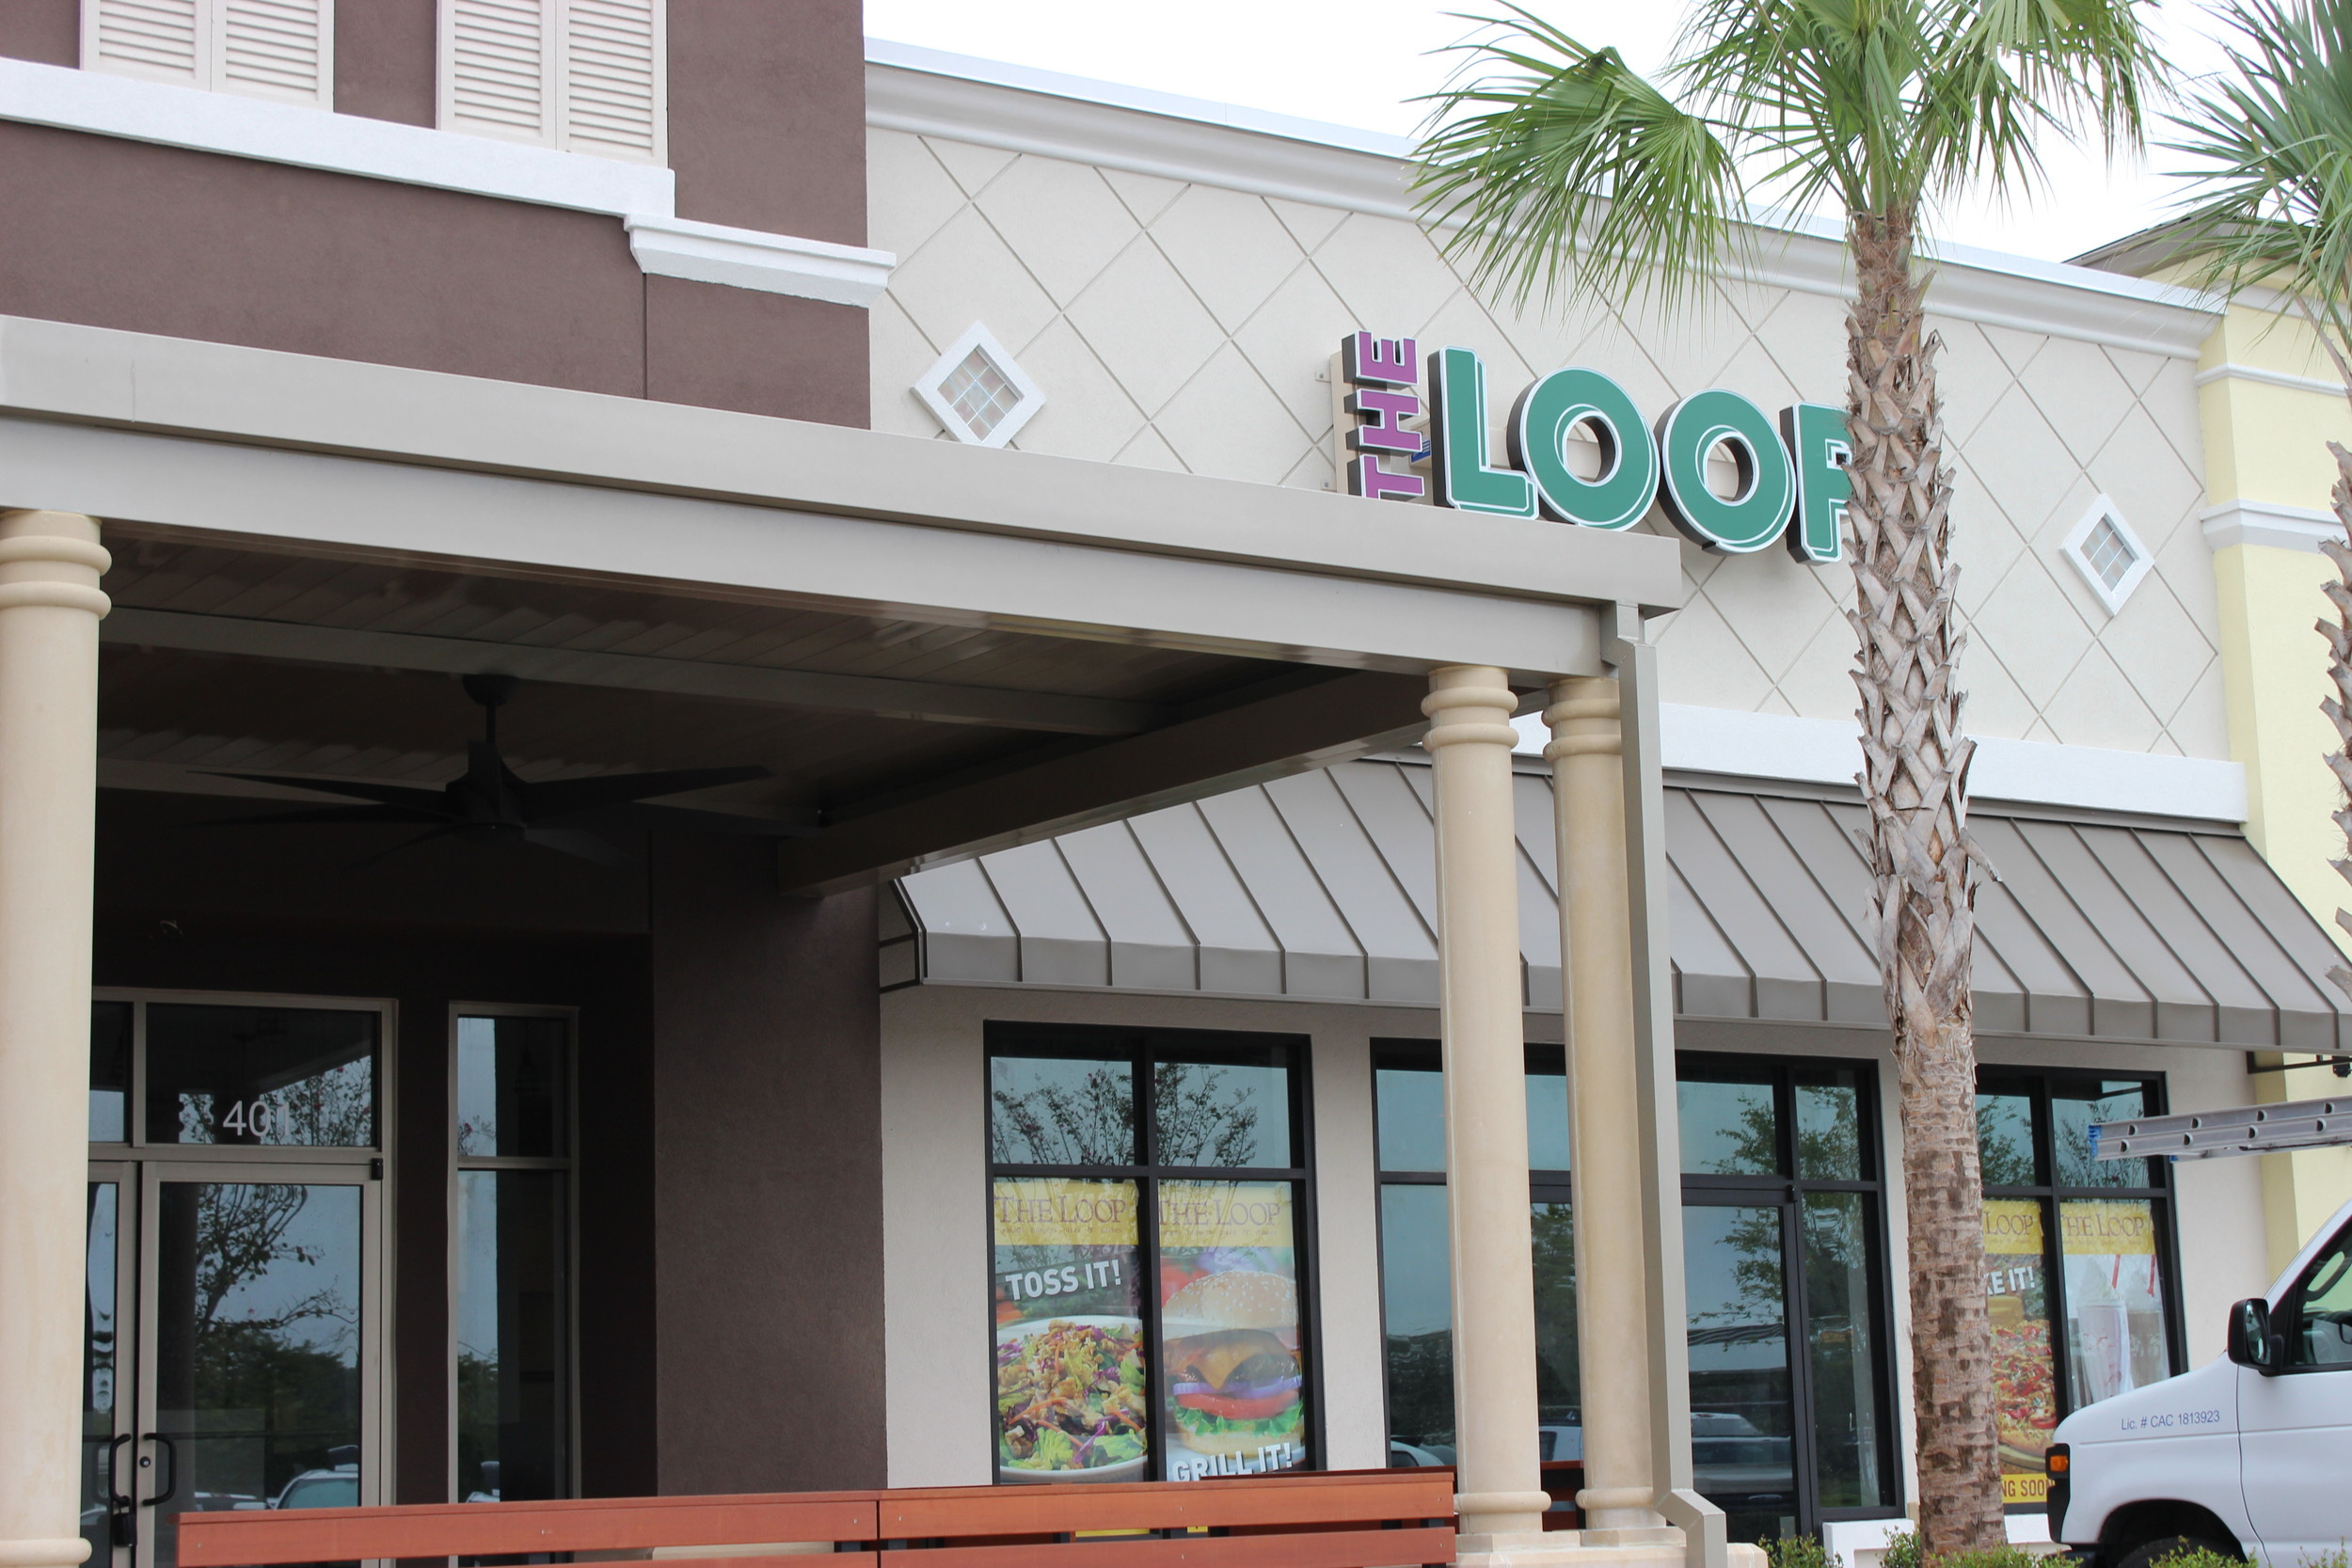 New businesses slated to open this month in Nocatee include the VyStar Credit Union and Loop Pizza Grill in the Nocatee town center. VyStar will open with a public ribbon cutting ceremony on Tues. Oct. 13 at 10 a.m. According to their Facebook page, the Loop will open in Nocatee in mid-October.